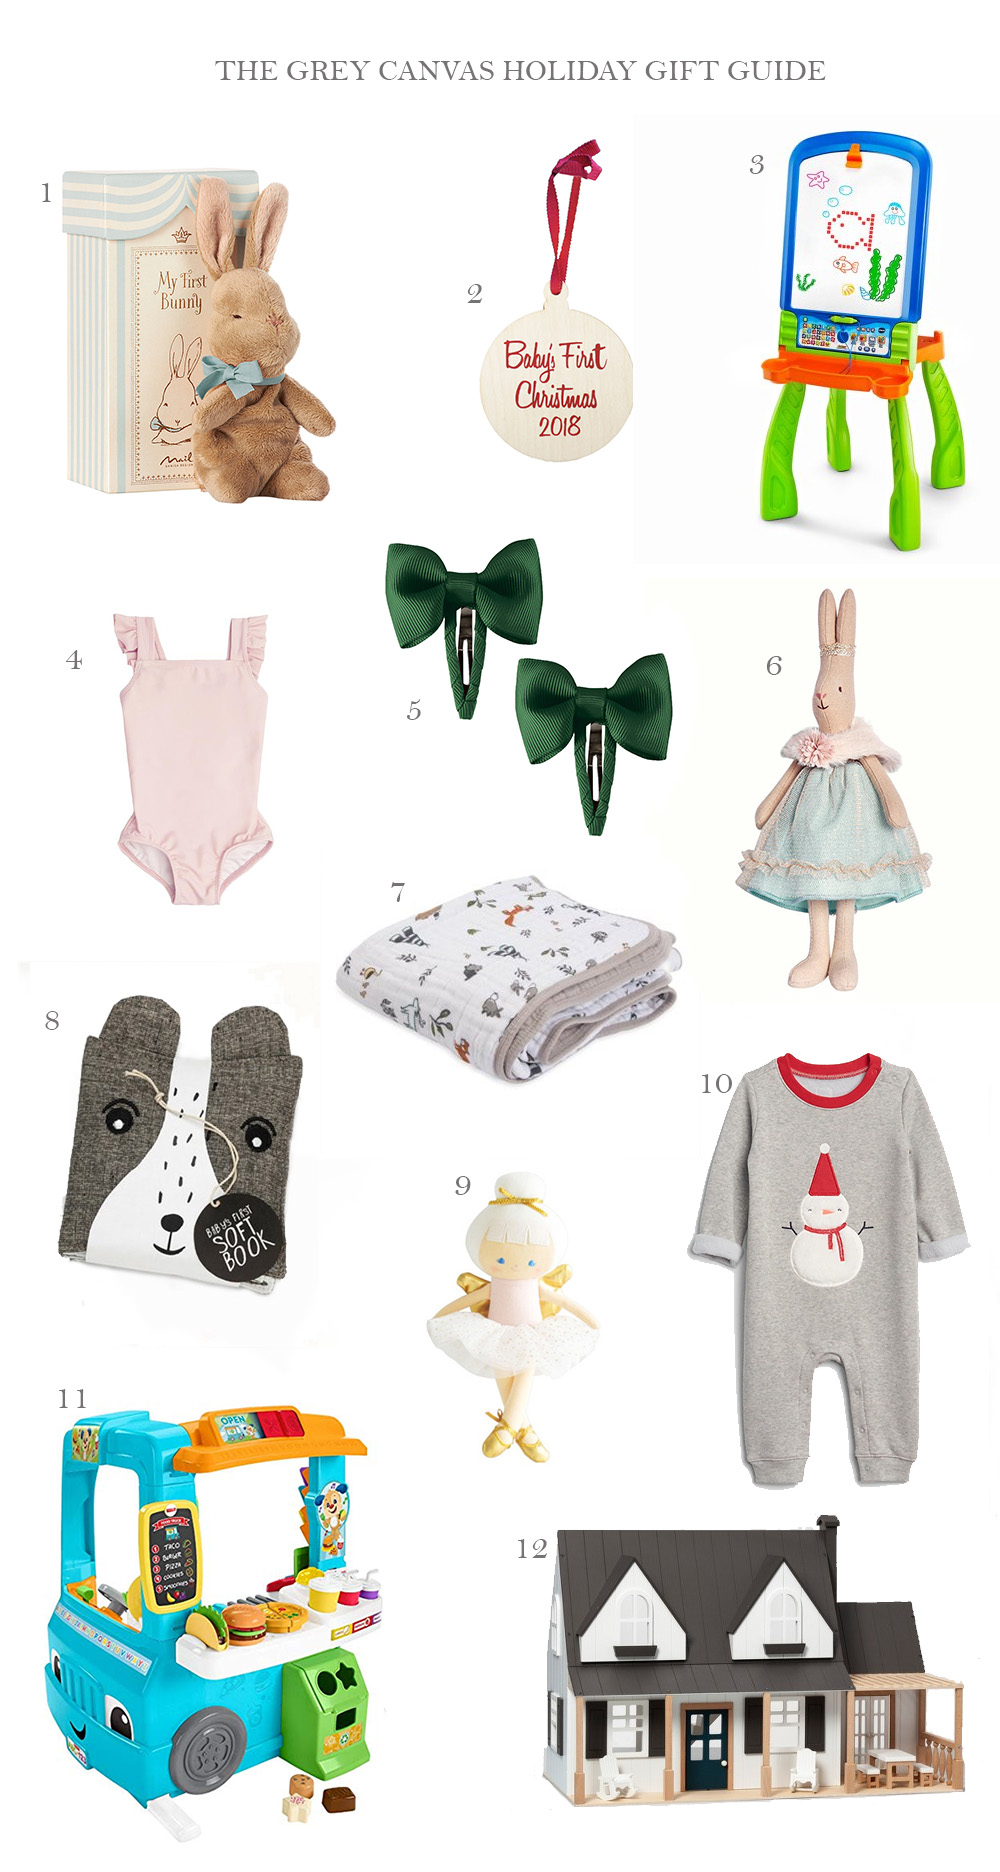 Gift Guide for Babies, Gift Guide for Toddlers, Gift Guide Kids Christmas, Gift Guide Kids Birthday